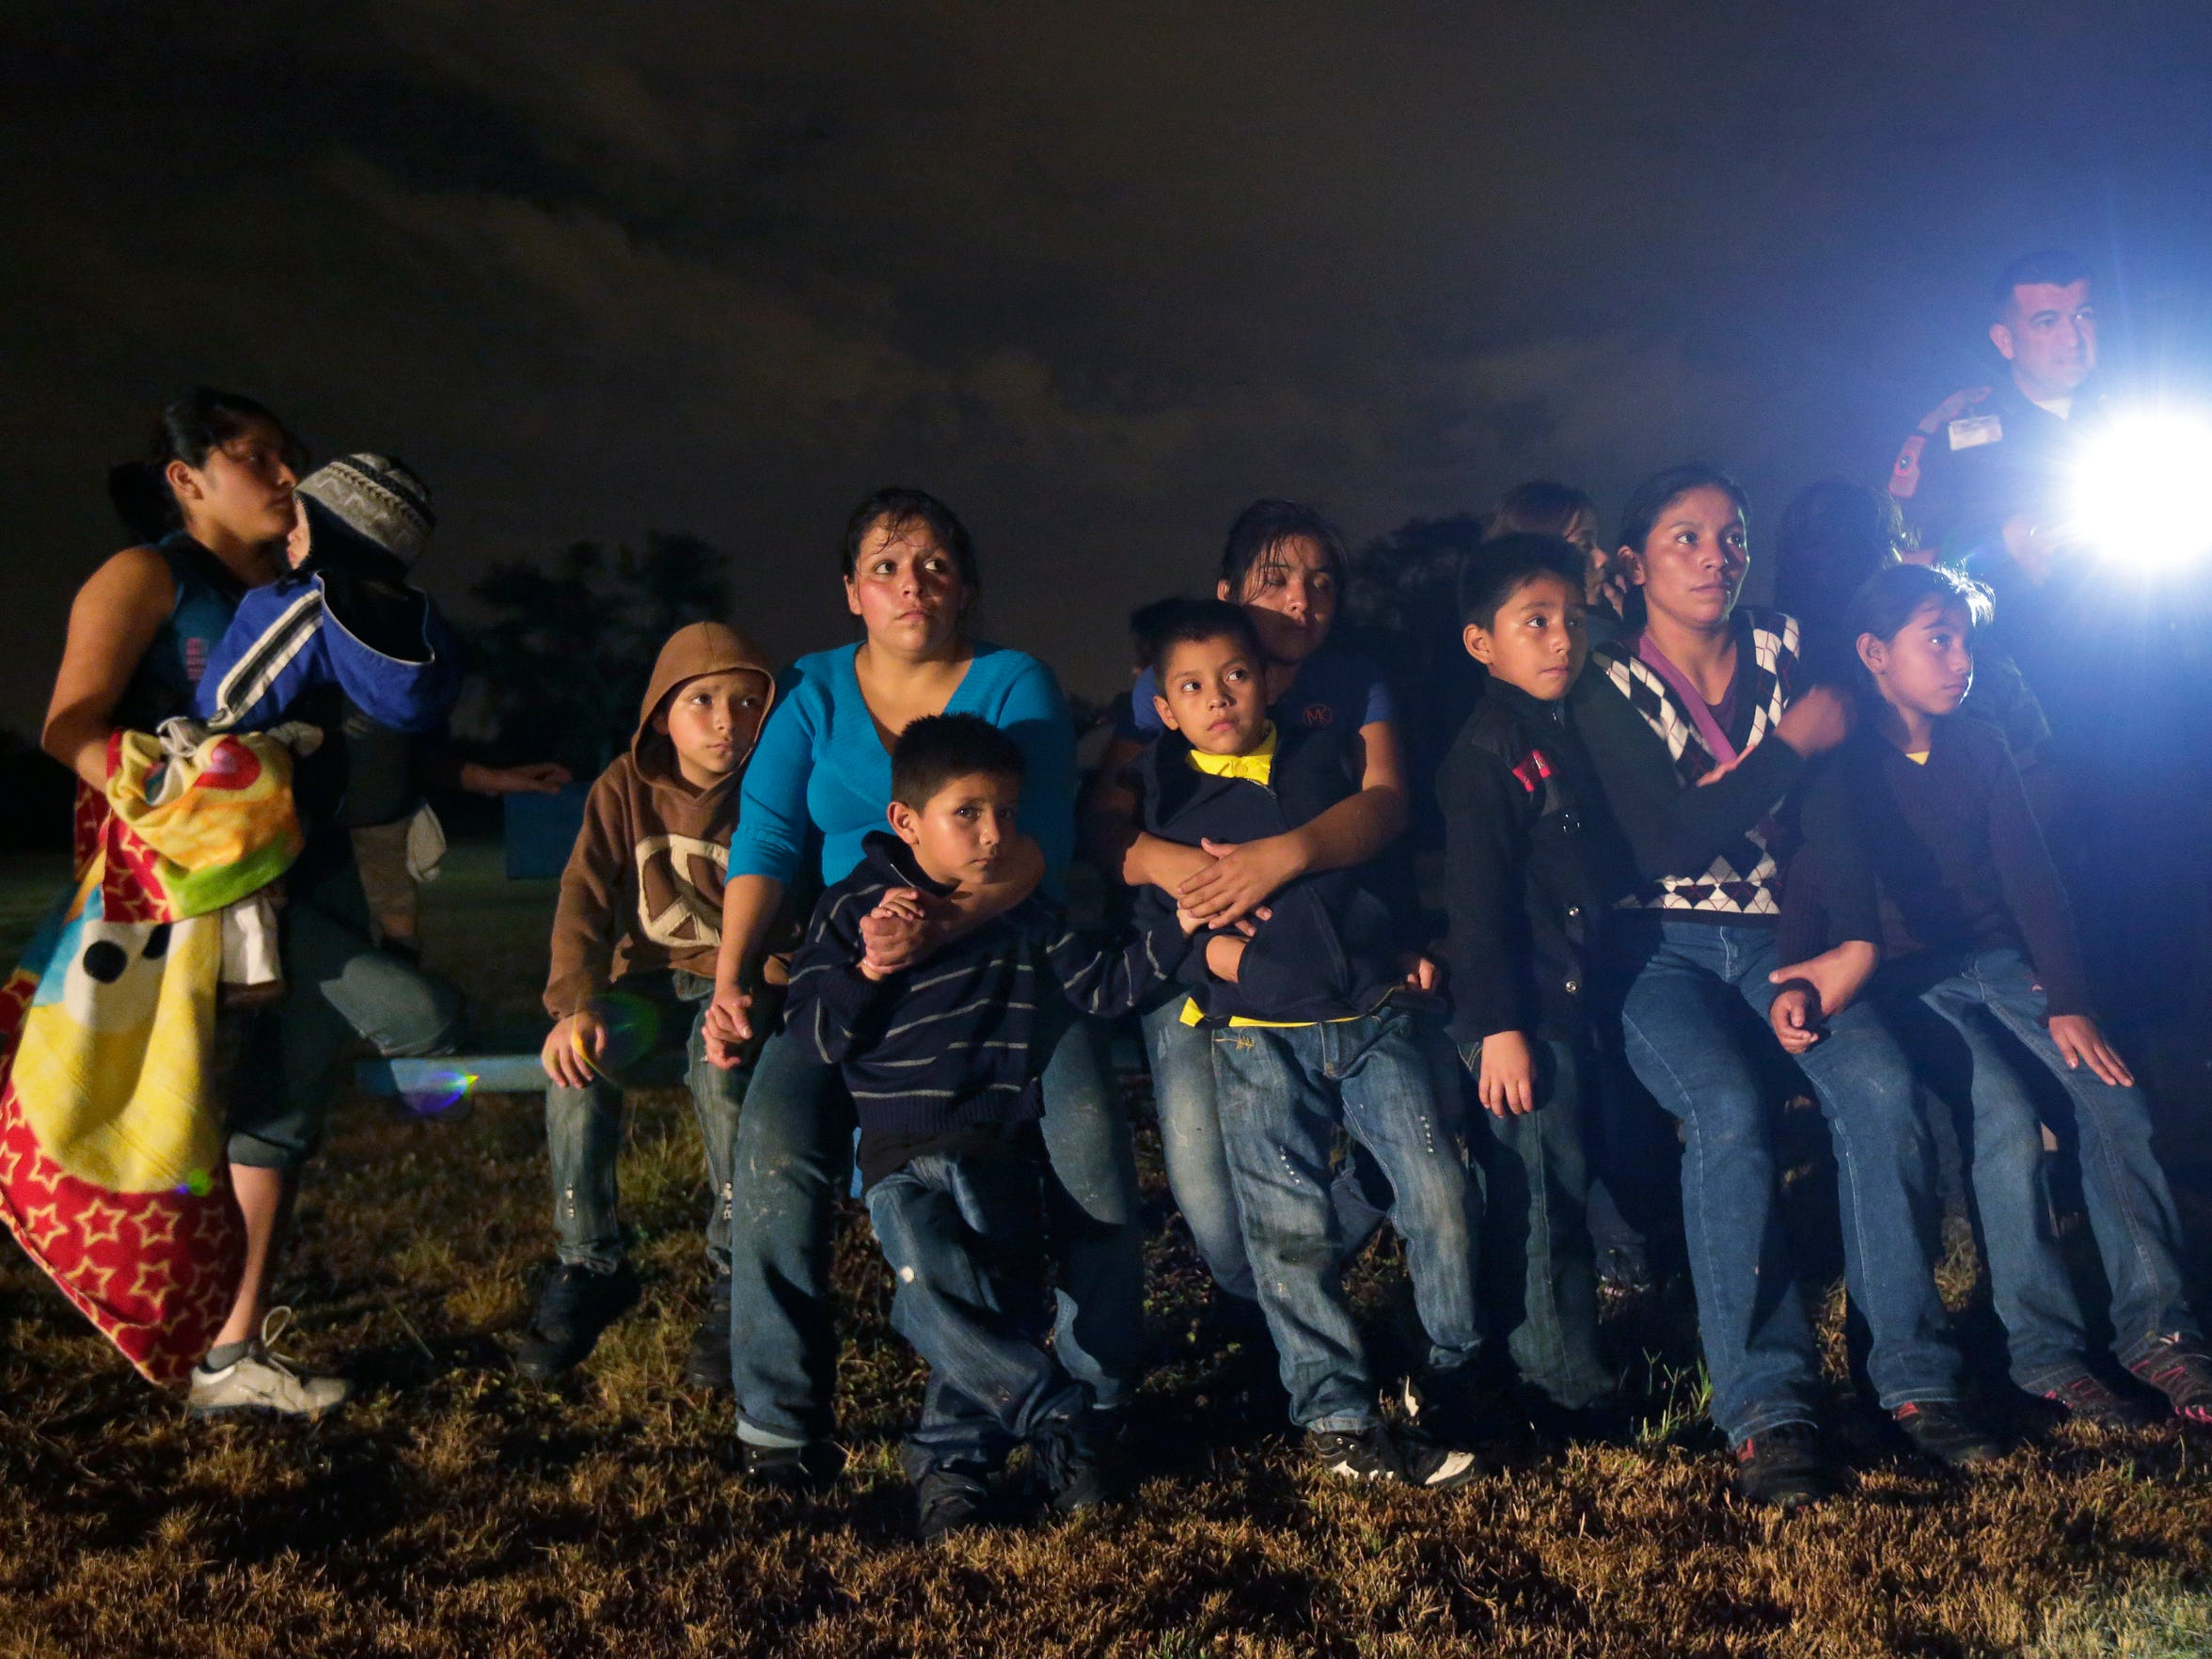 Immigrants from Honduras and El Salvador are stopped